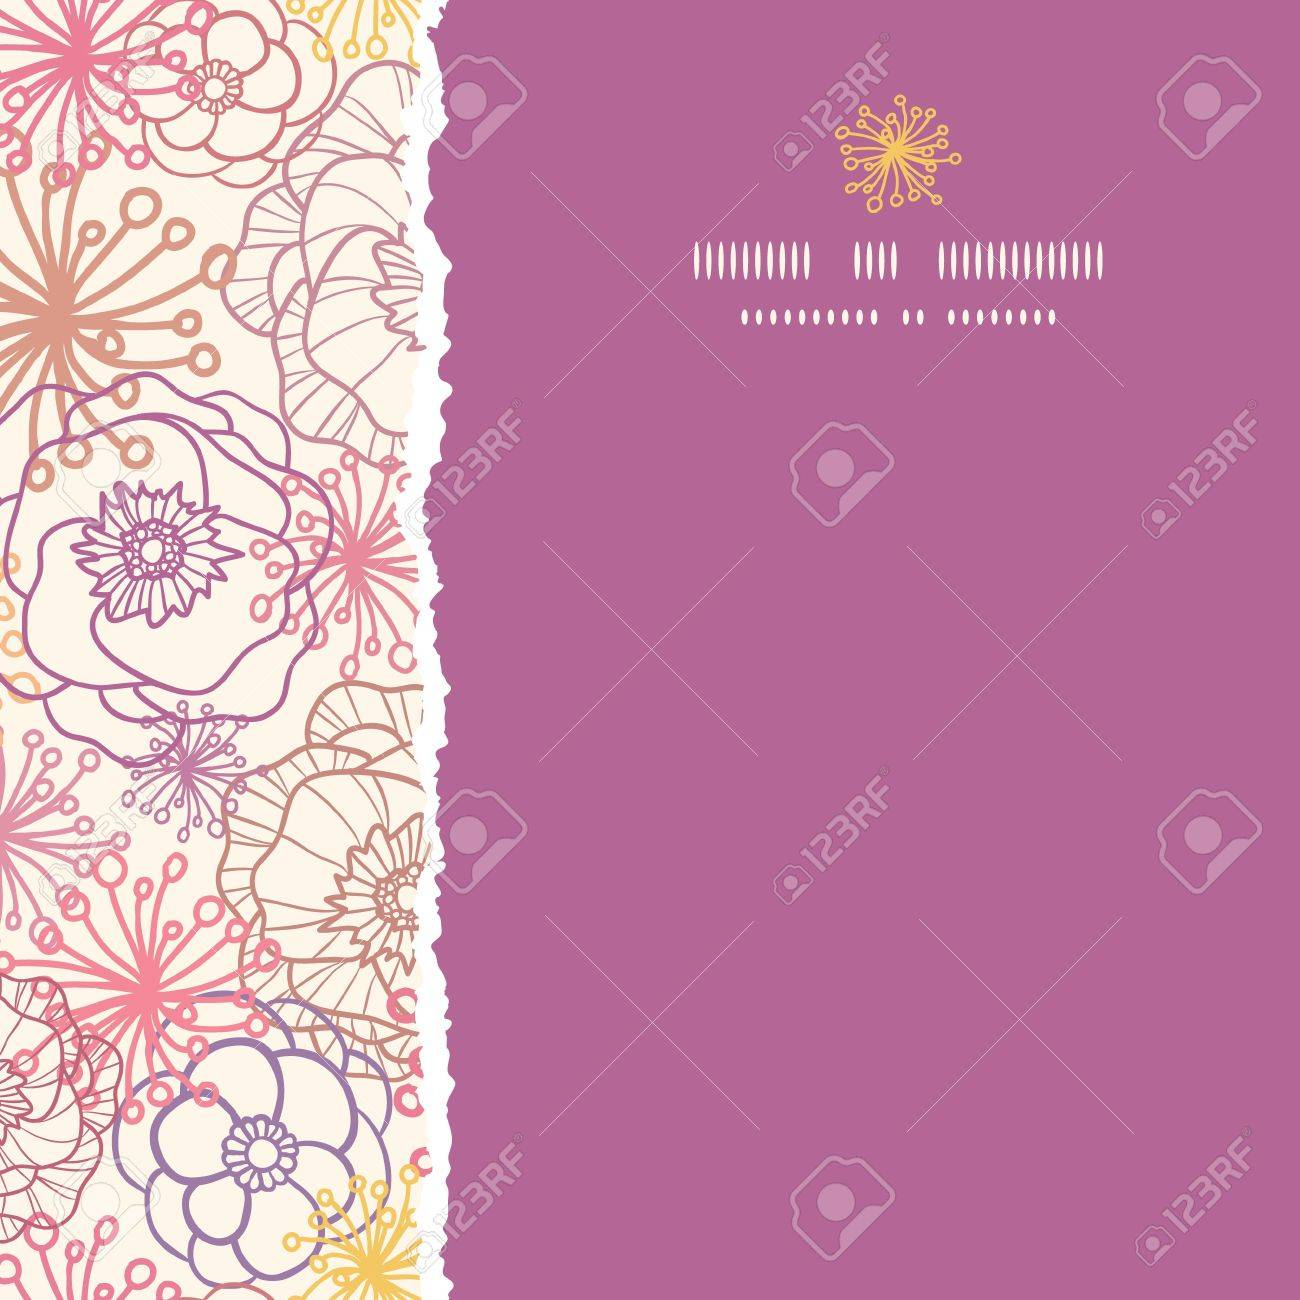 Subtle field flowers square torn seamless pattern background Stock Vector - 19278275